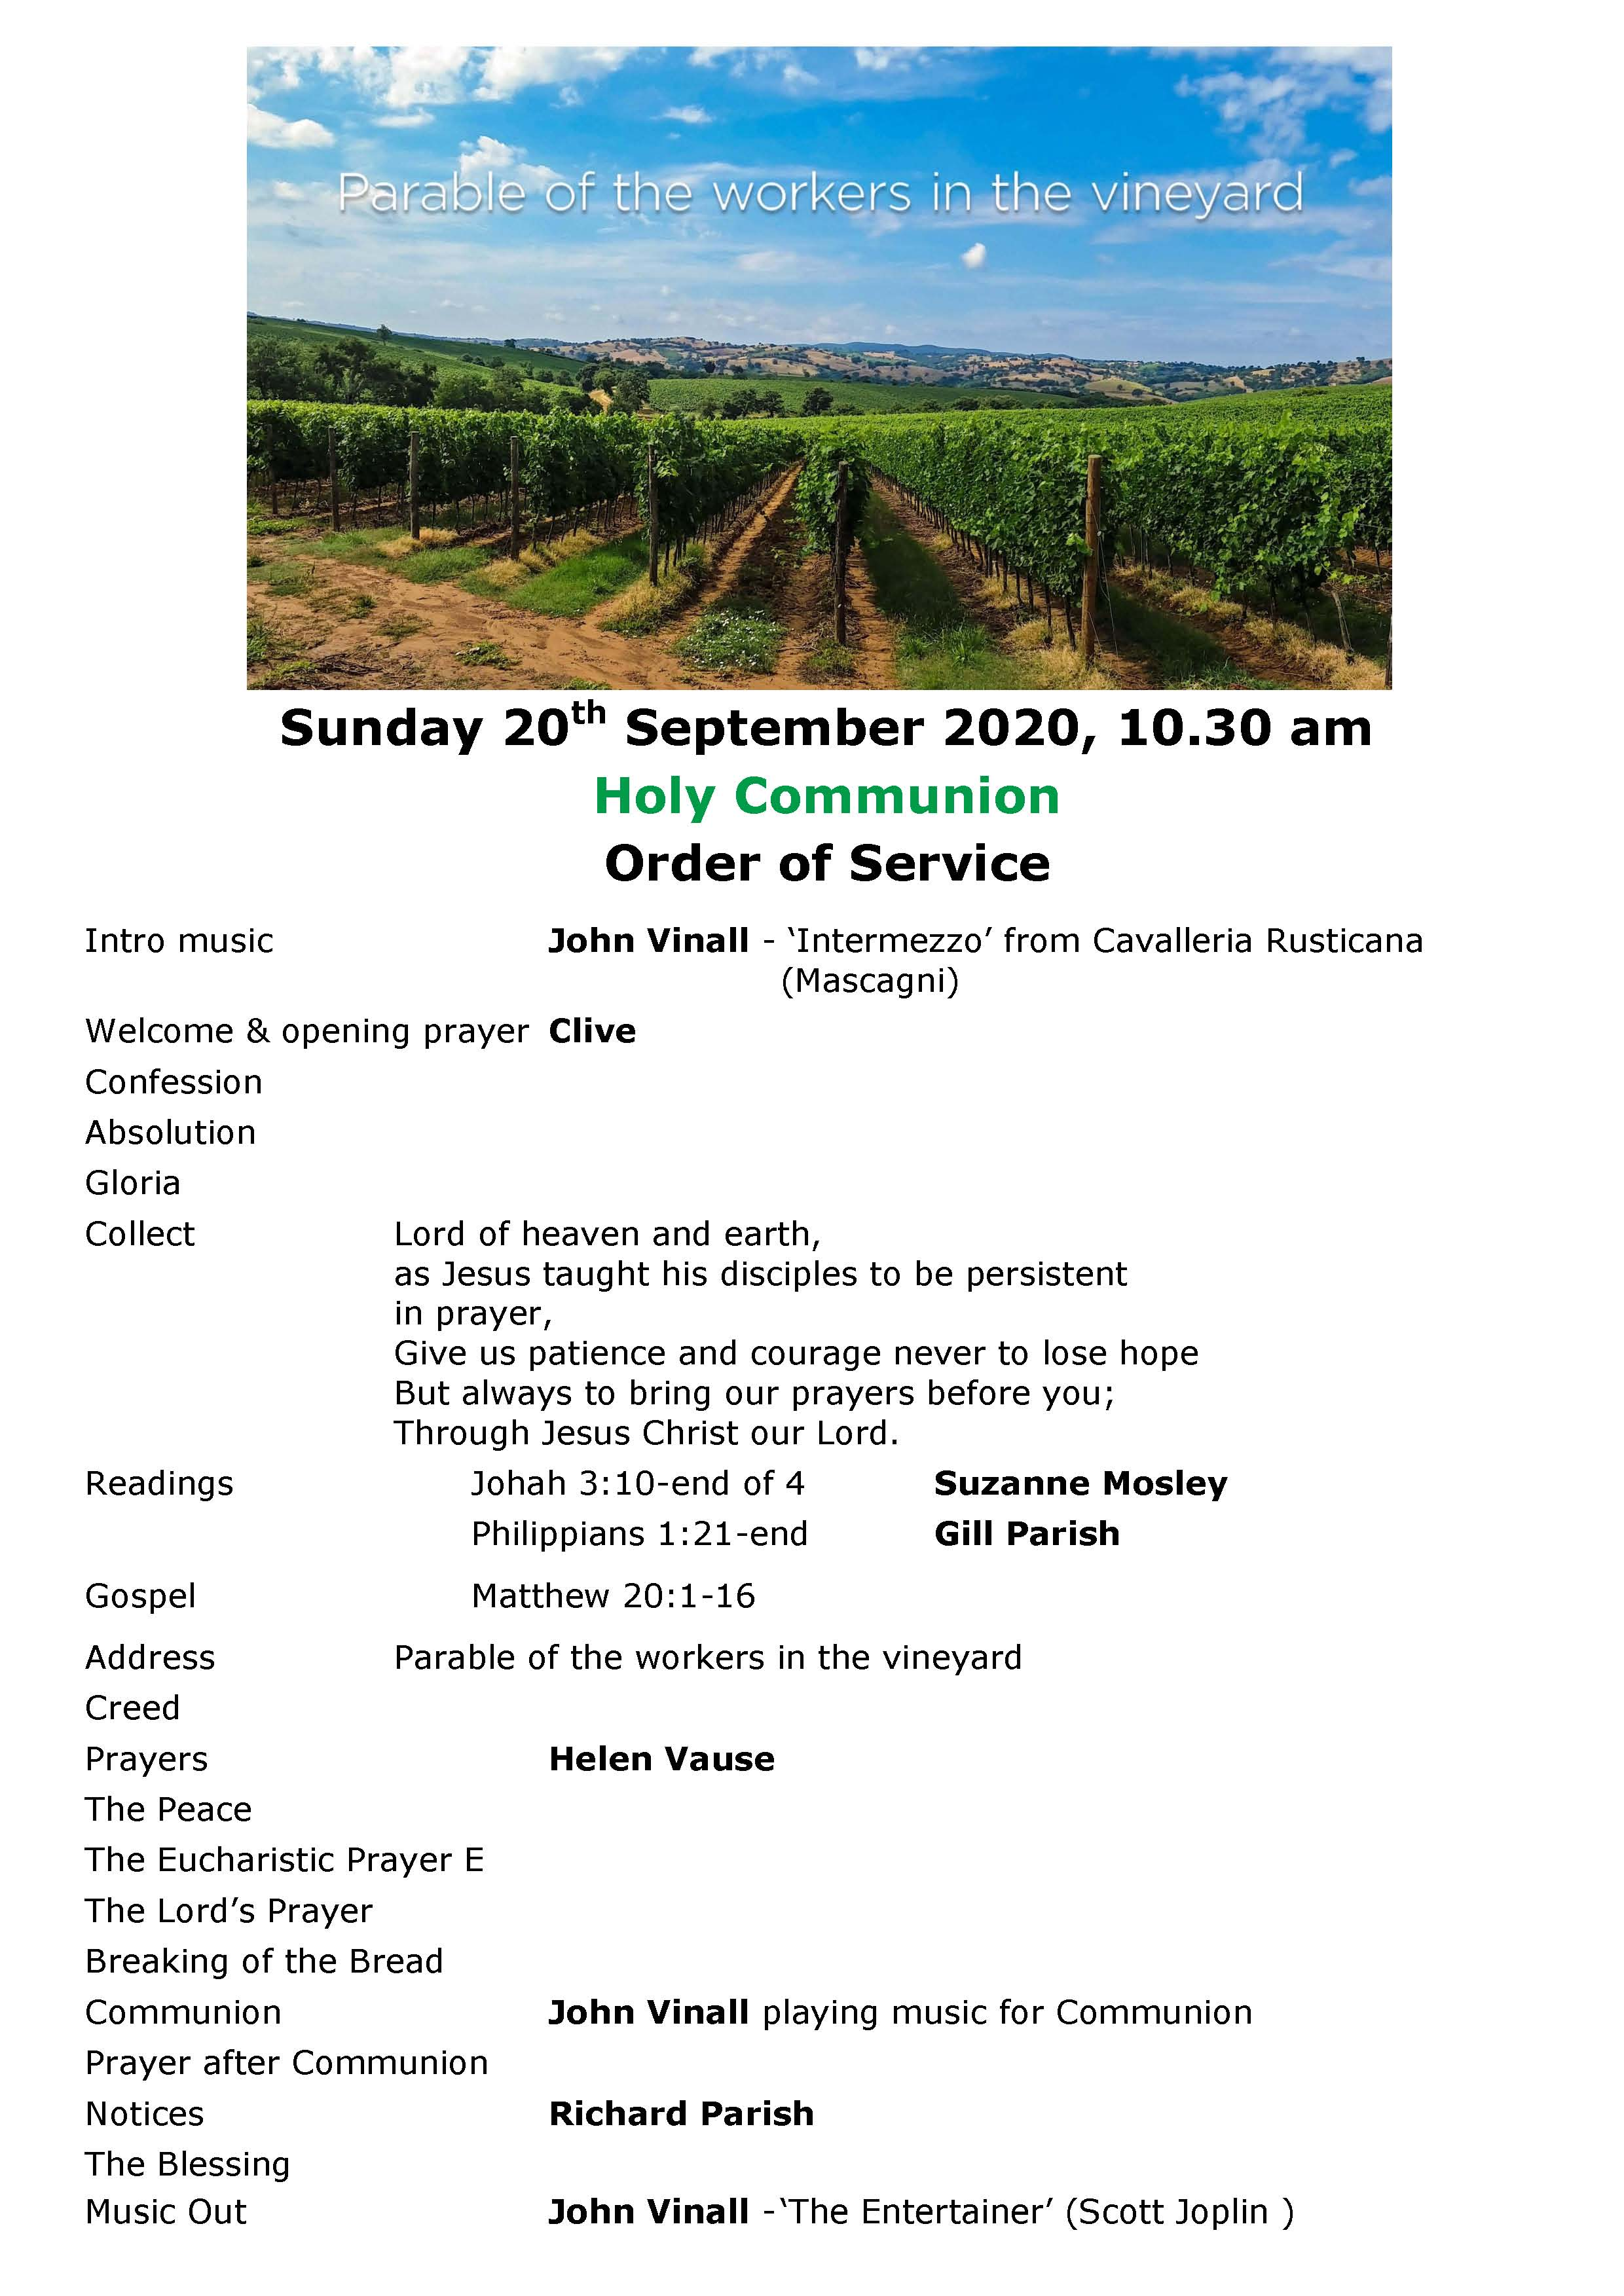 Order of Service 20th September 2020